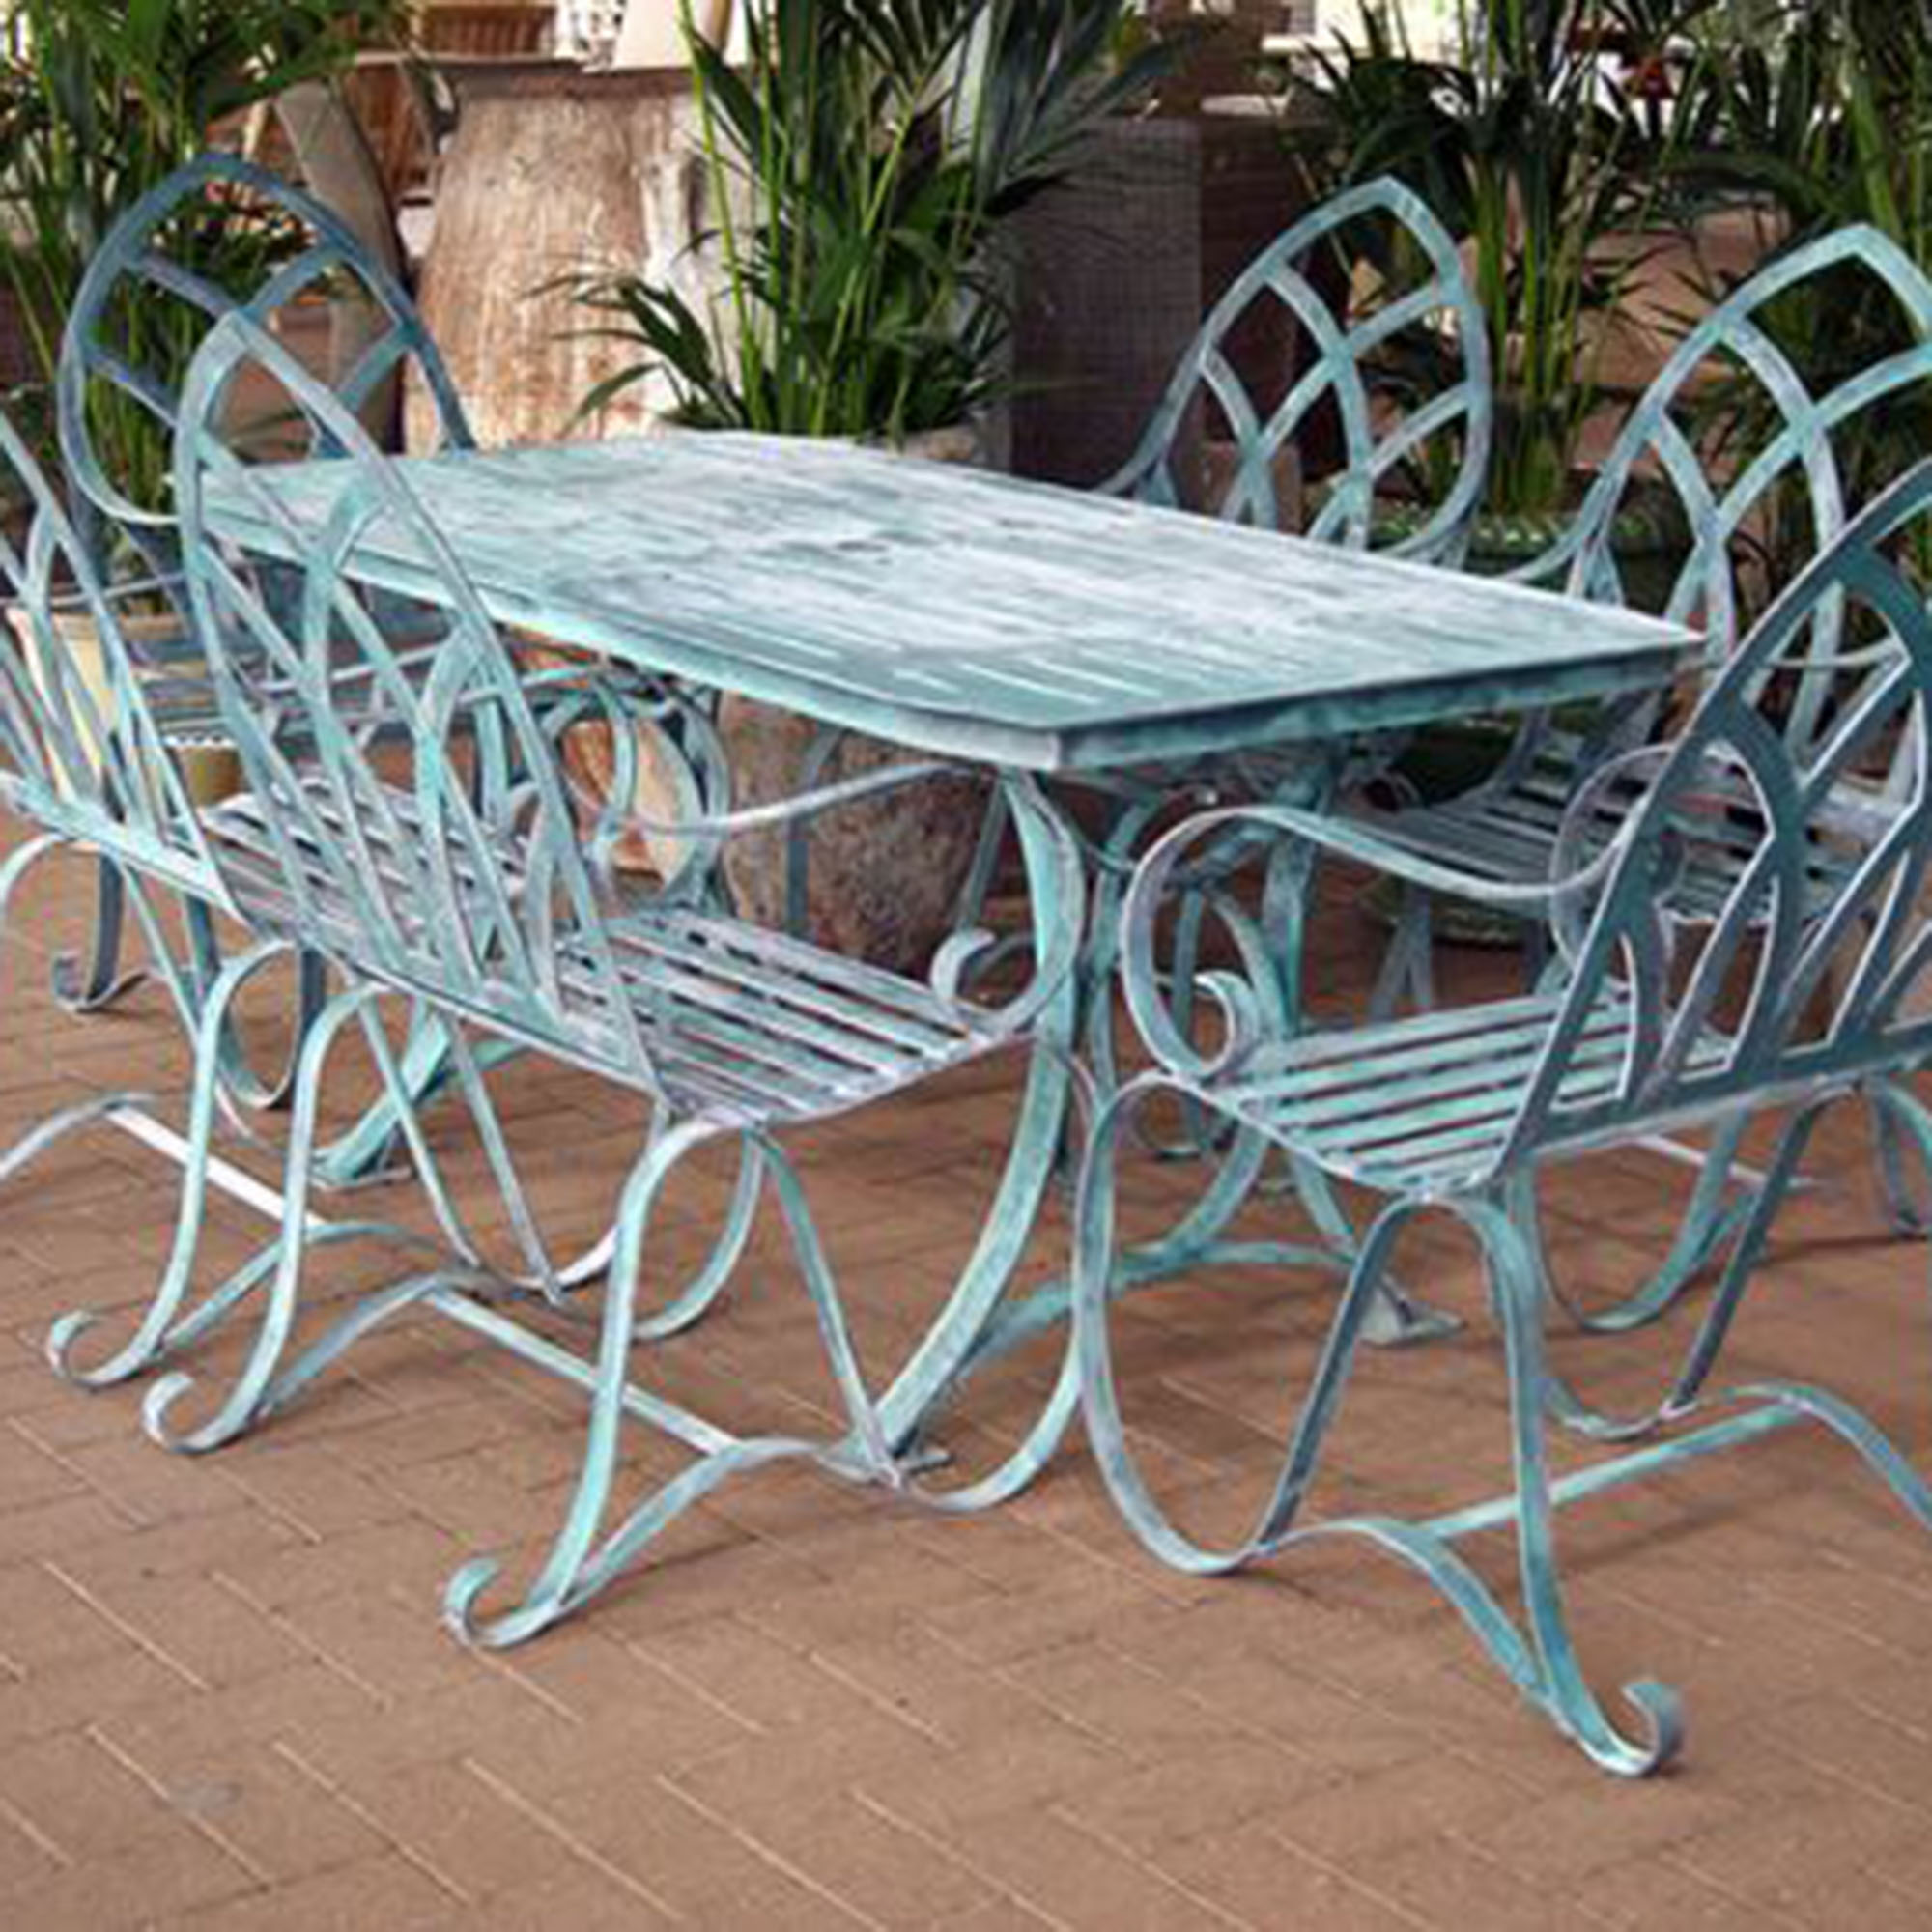 Buy verdigris gothic garden dining set for 6 burford garden company Metal garden furniture sets